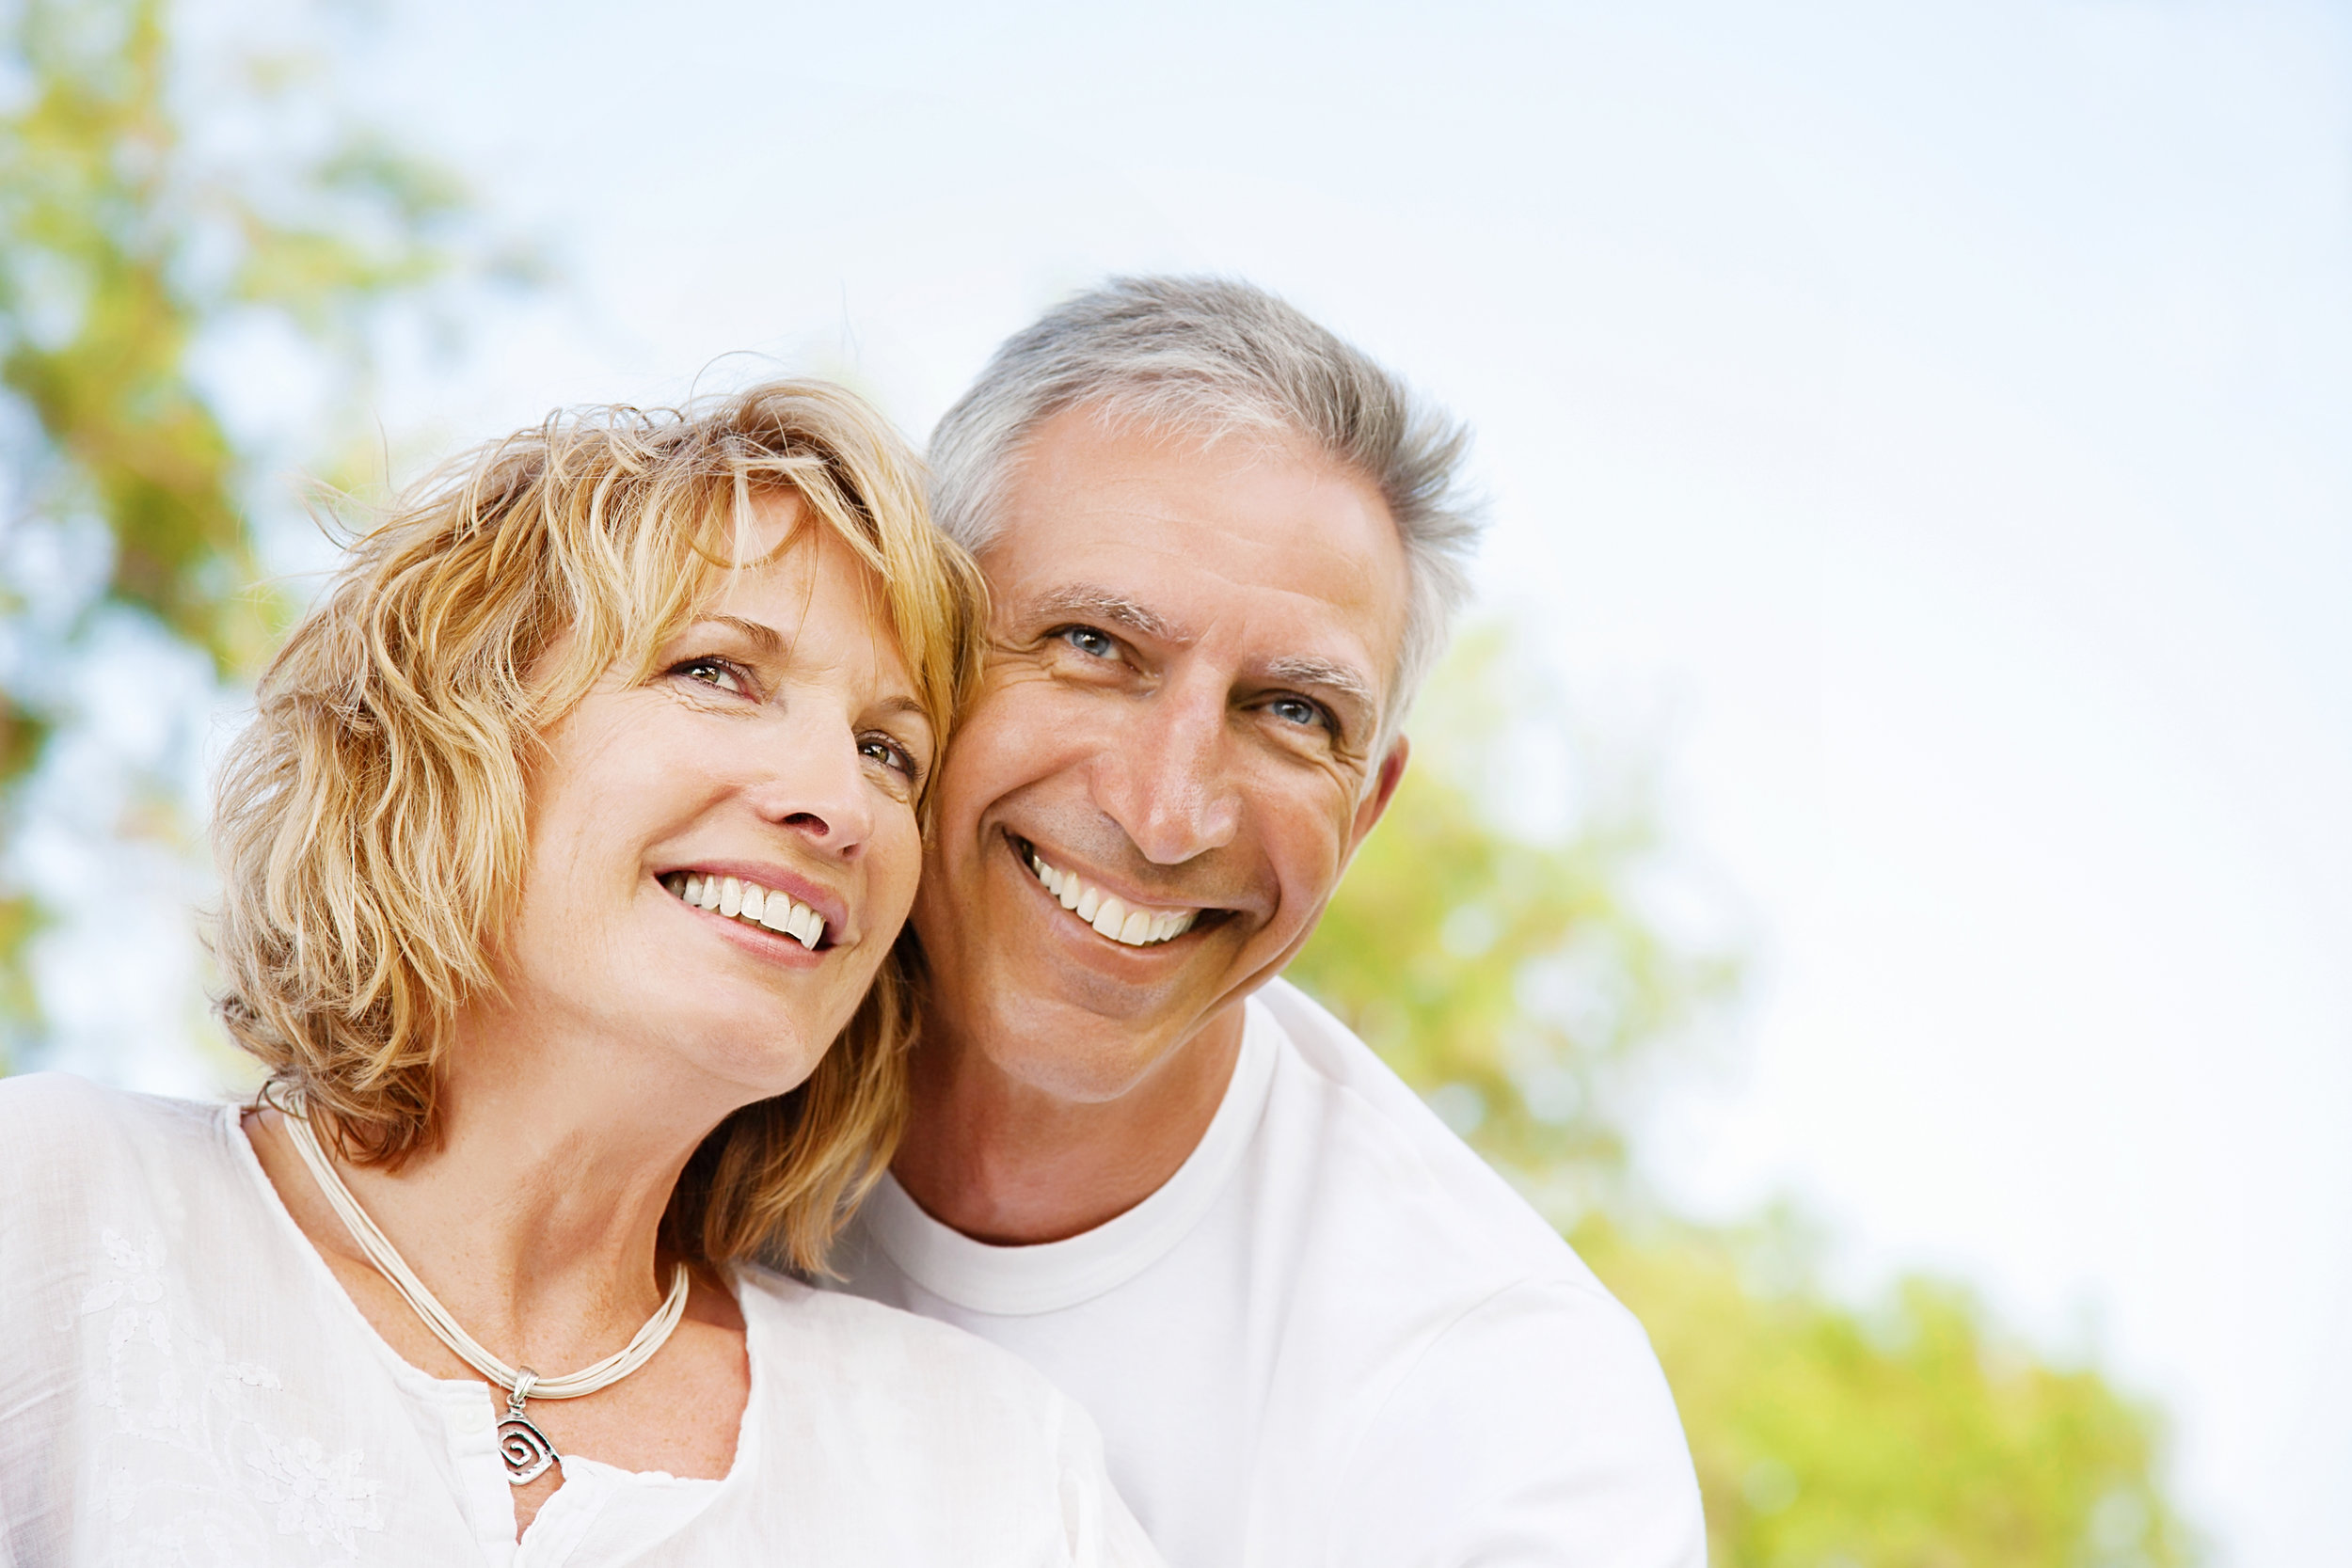 Dental Implants - Come see Dr. Sean Grady to experience the difference we can make in your life. Our goal is to give you a better experience, a brighter smile and a lifetime of confidence.